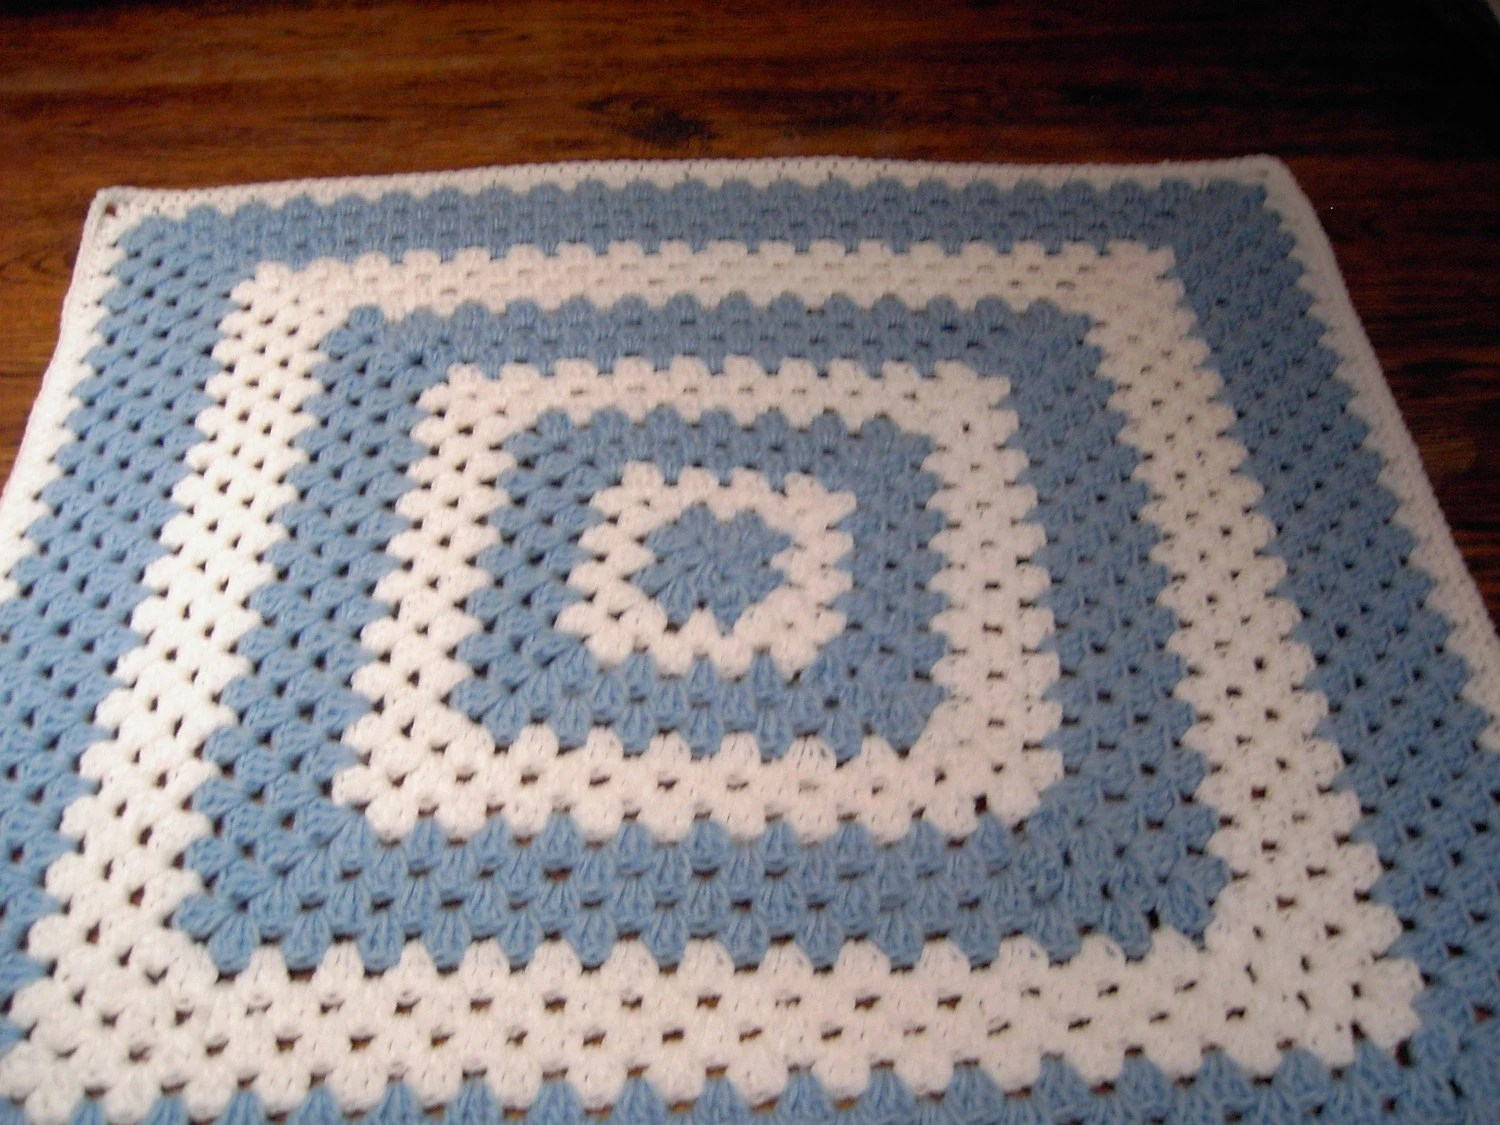 Crochet Blanket - Large Chunky Square style blanket with with blue/white      598